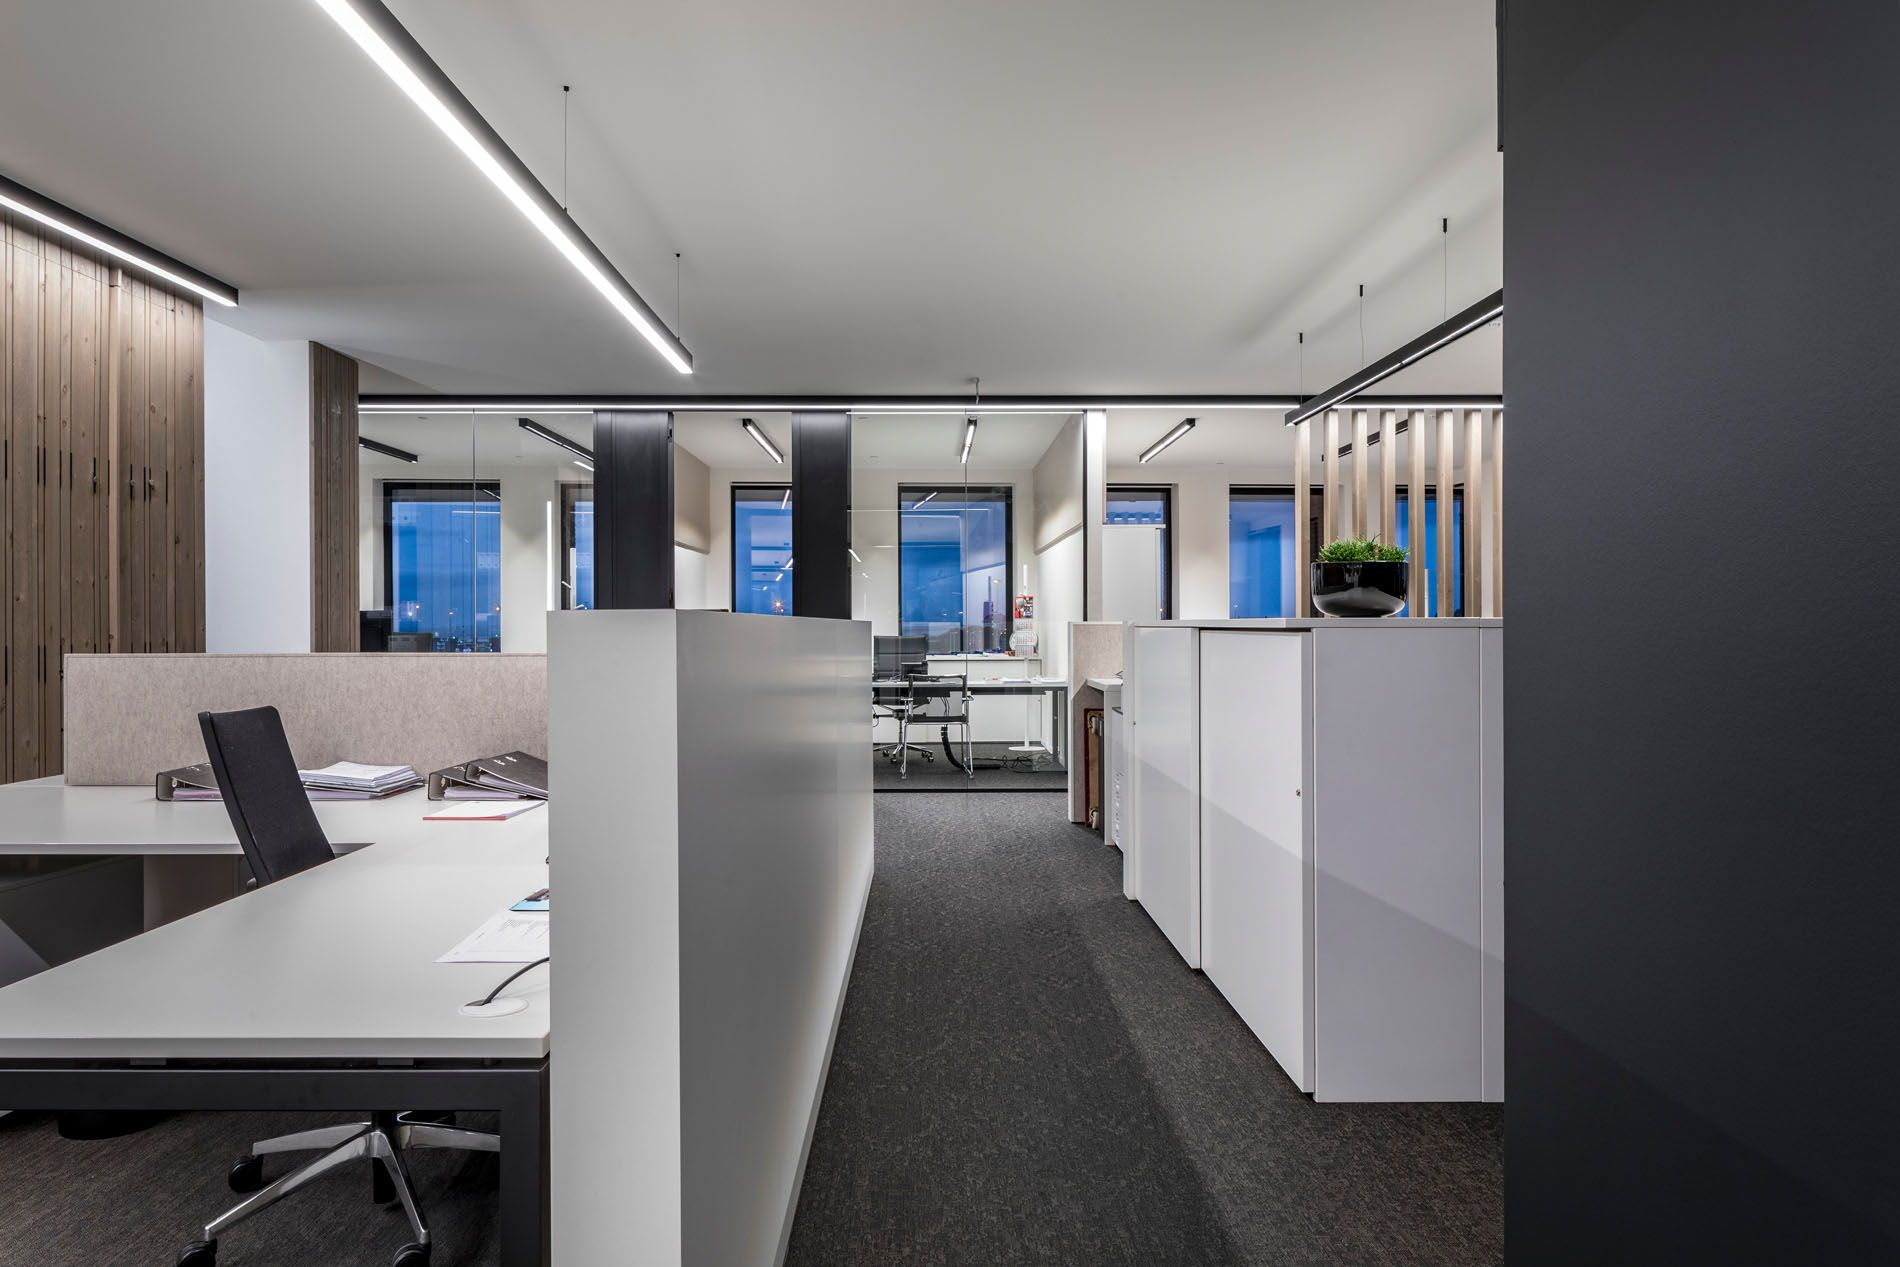 Need some ideas for office lighting fixtures drupl70 has the best lighting design for offices